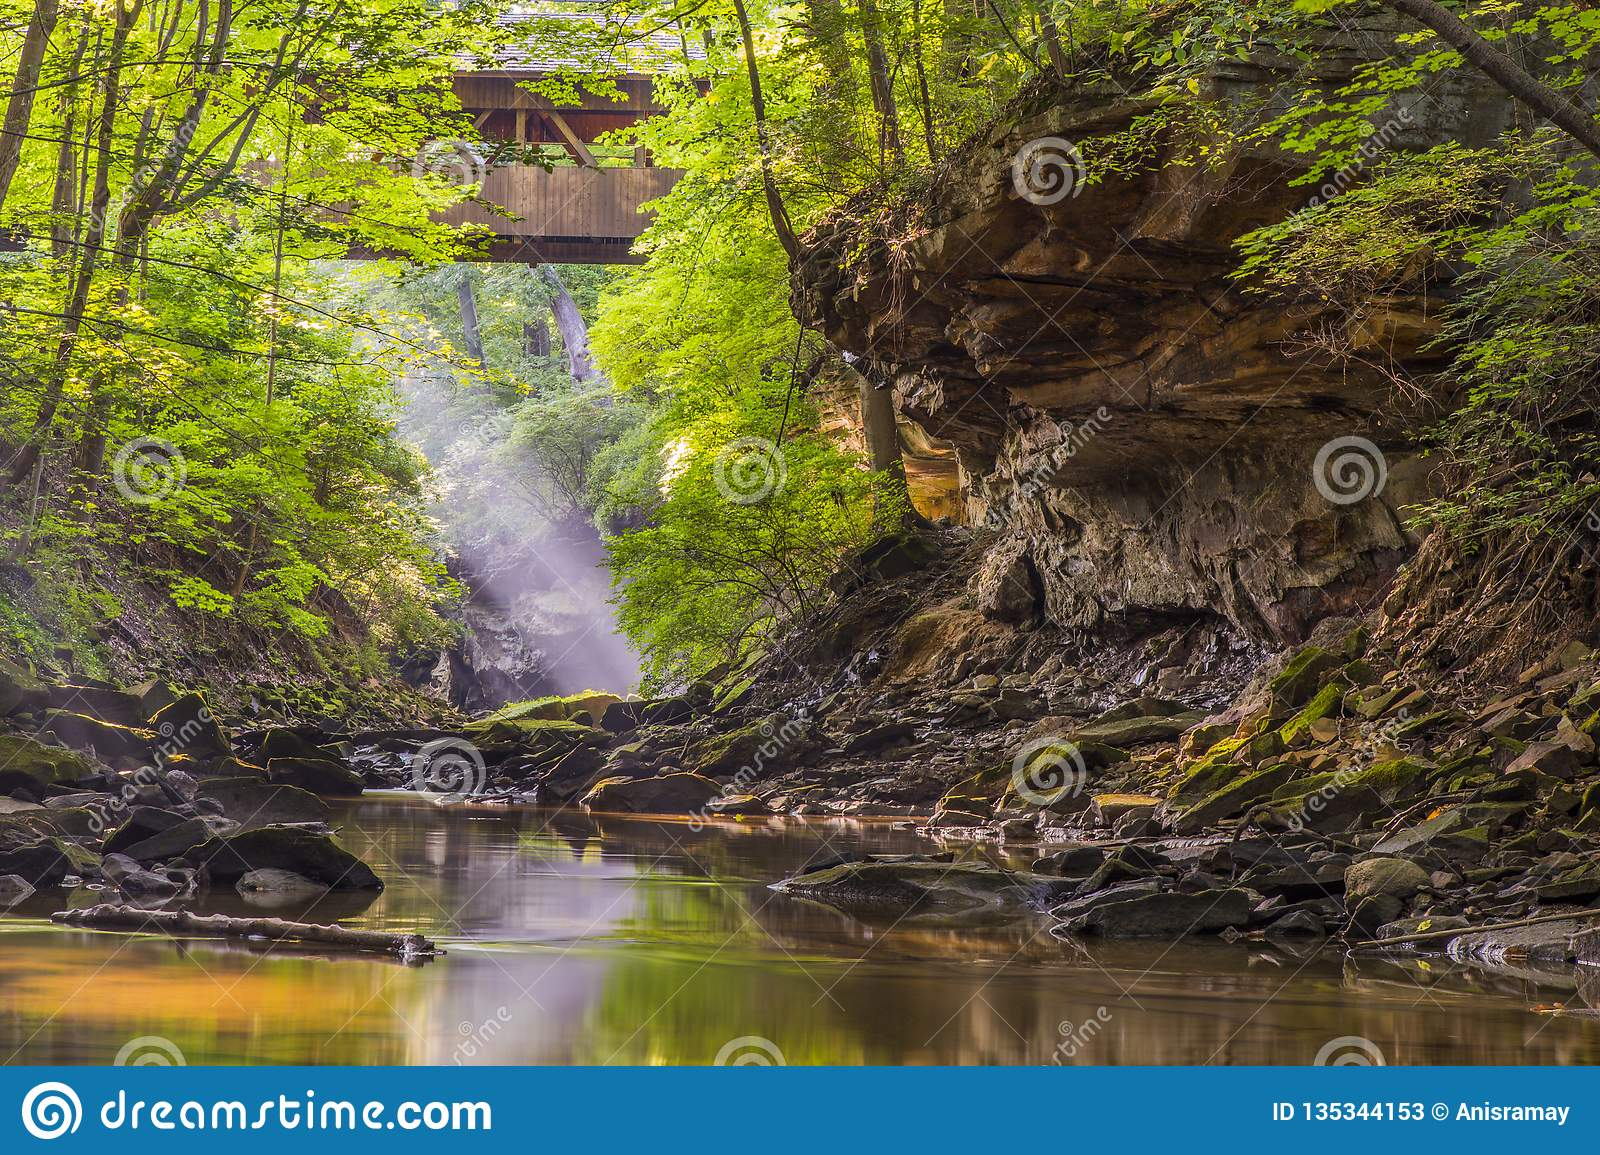 Travel, north east ohio, USA, sun rays, wild, jungle, forest, bridge, canyon, george, nature at its best